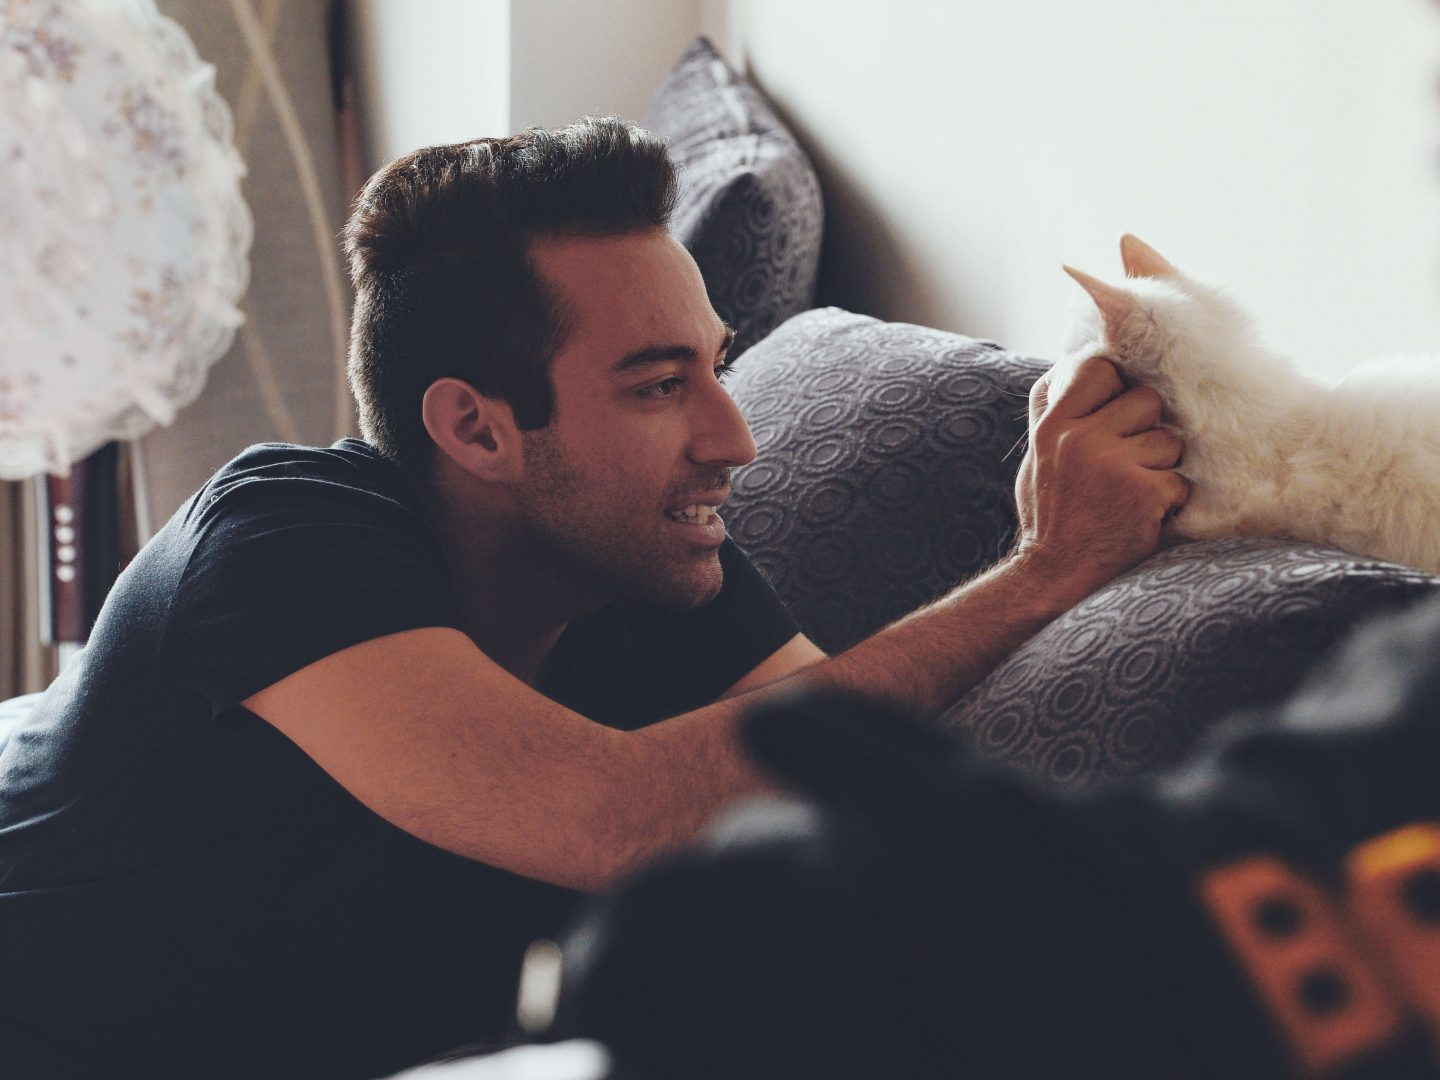 Petting a cat won't kill your productivity. Actually, it may boost it.